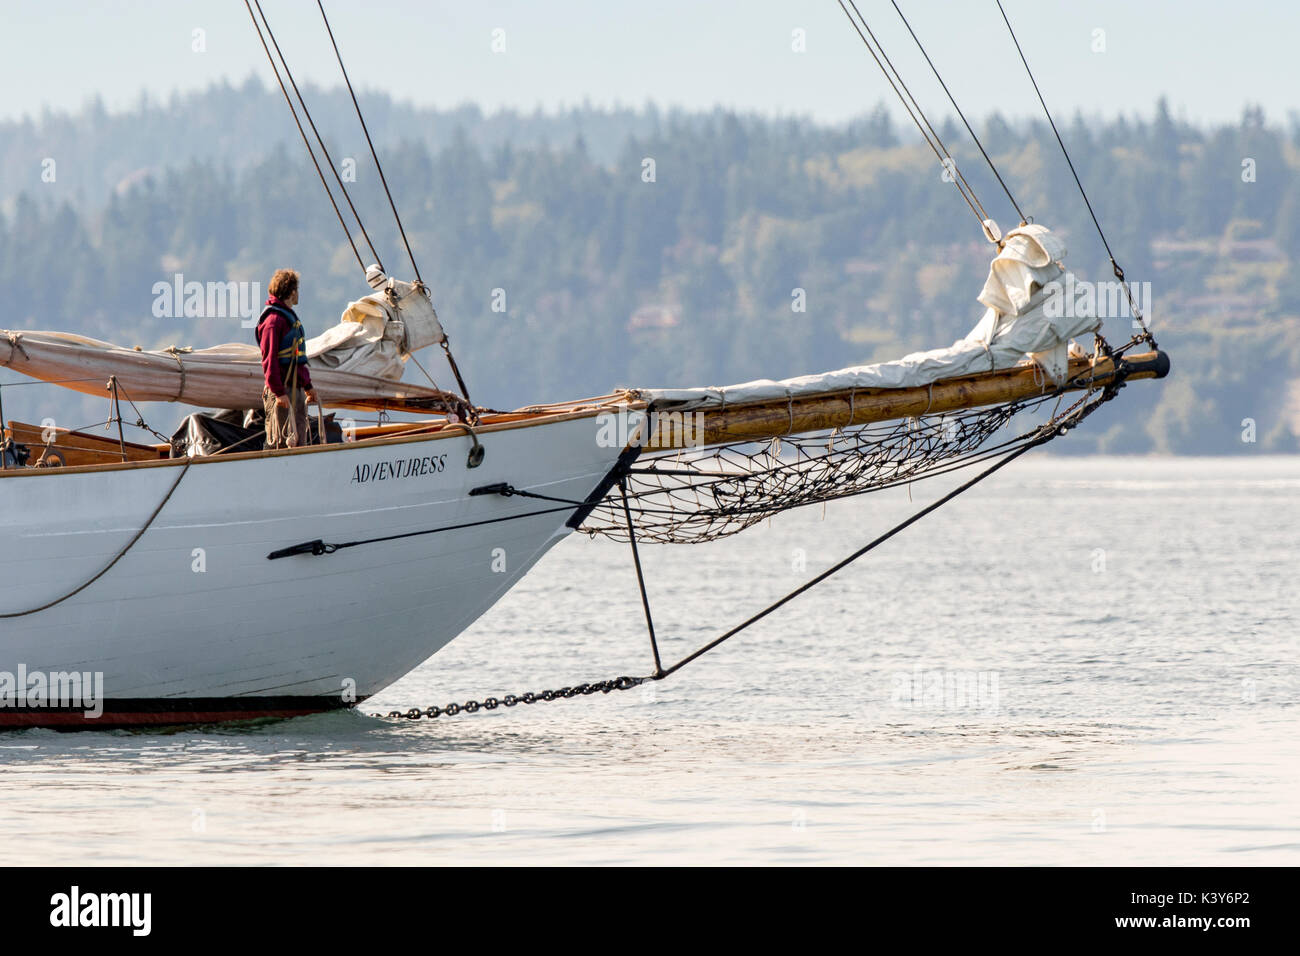 Sailing boat, sailboat wooden schooner yacht Port Townsend, Puget Sound, Washington. Sailing boat Adventuress. - Stock Image